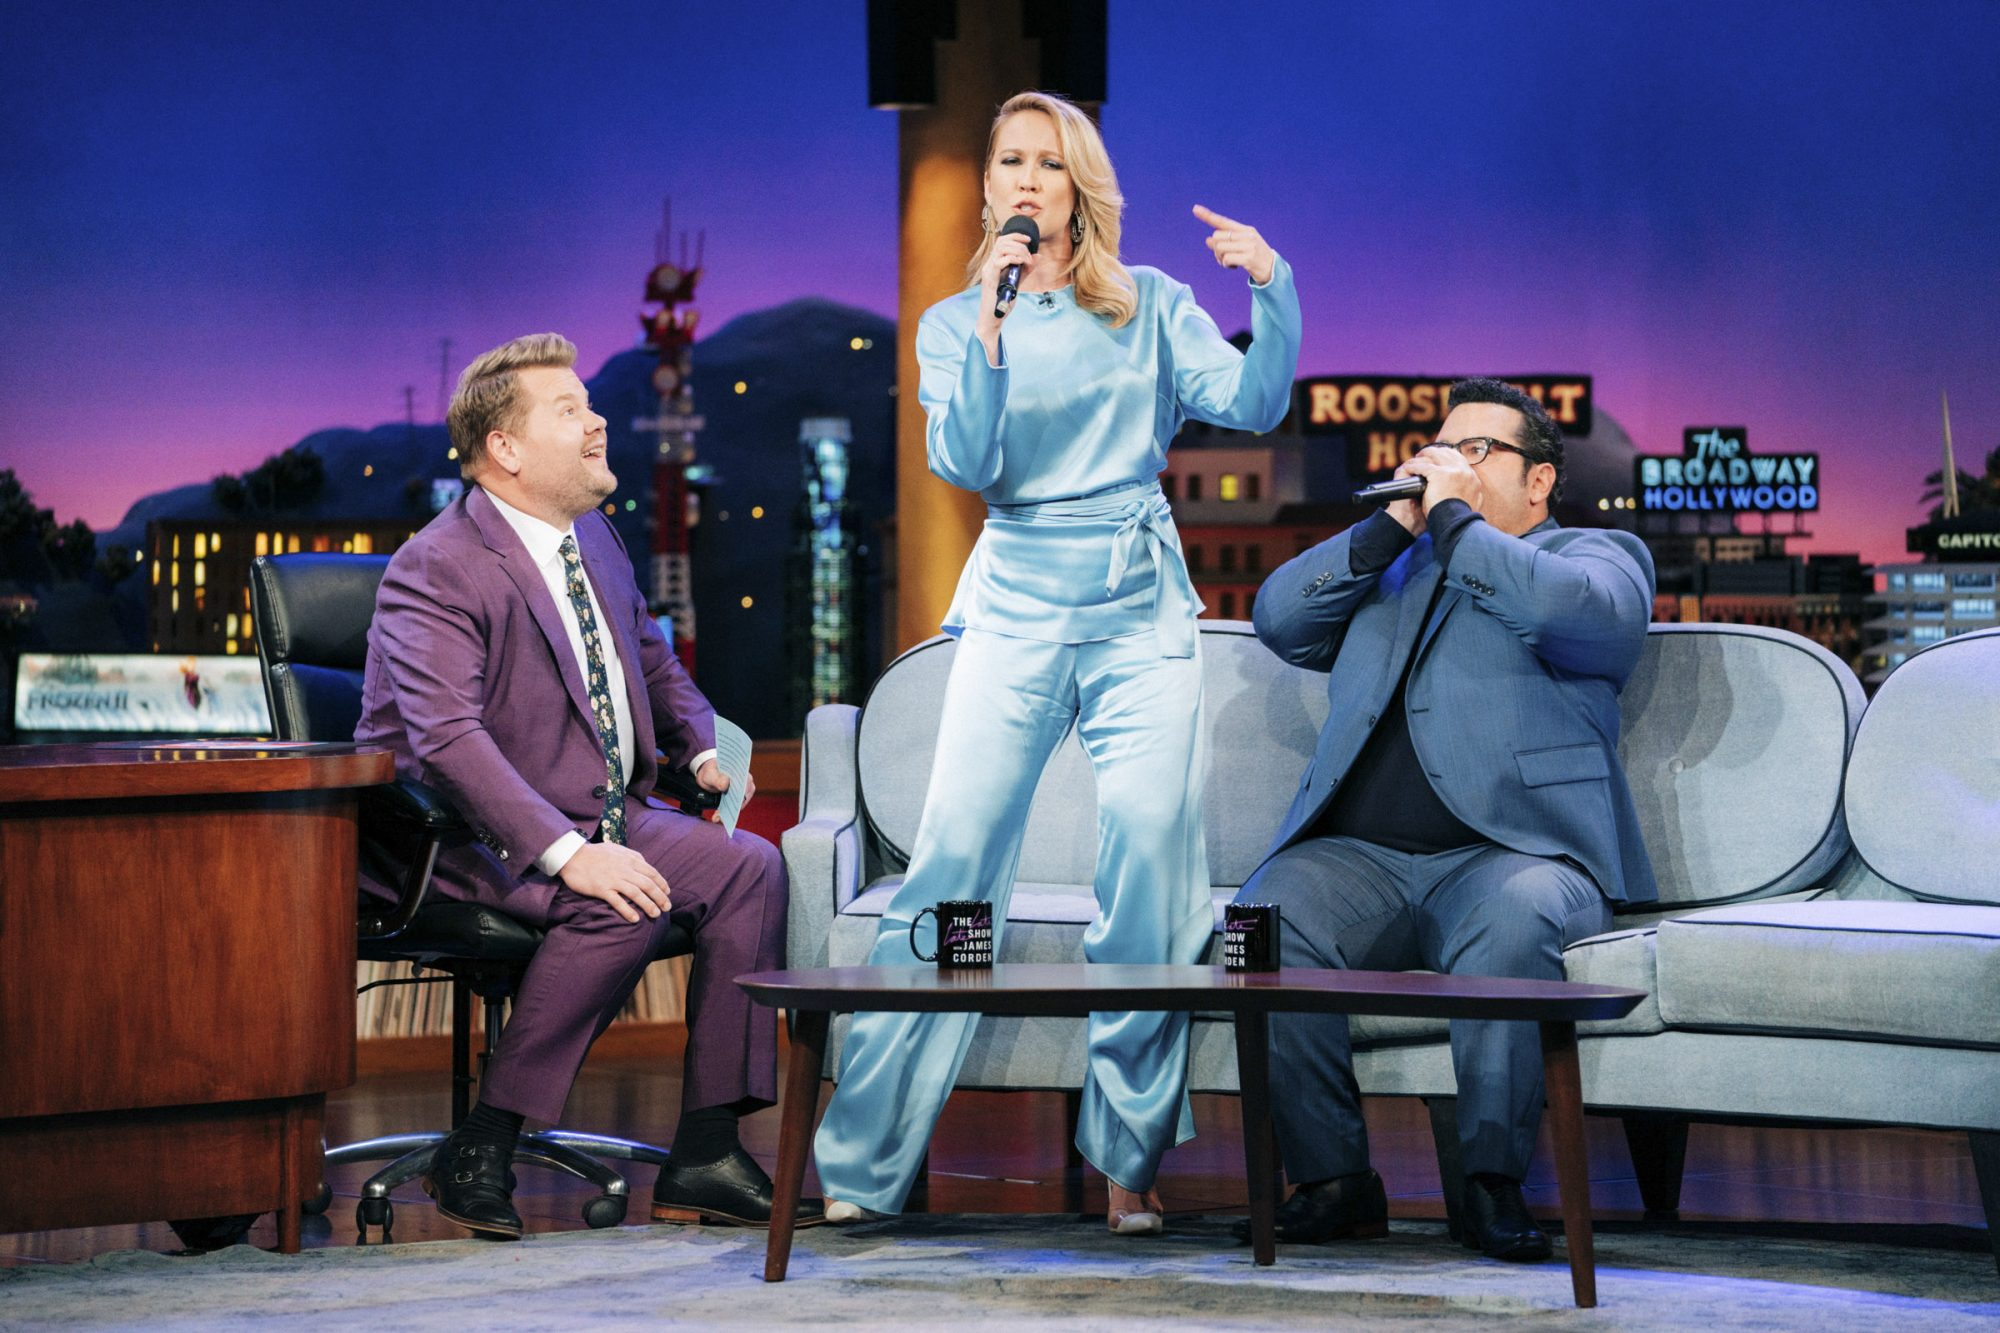 The Late Late Show with James Corden with guests Anna Camp, Josh Gad